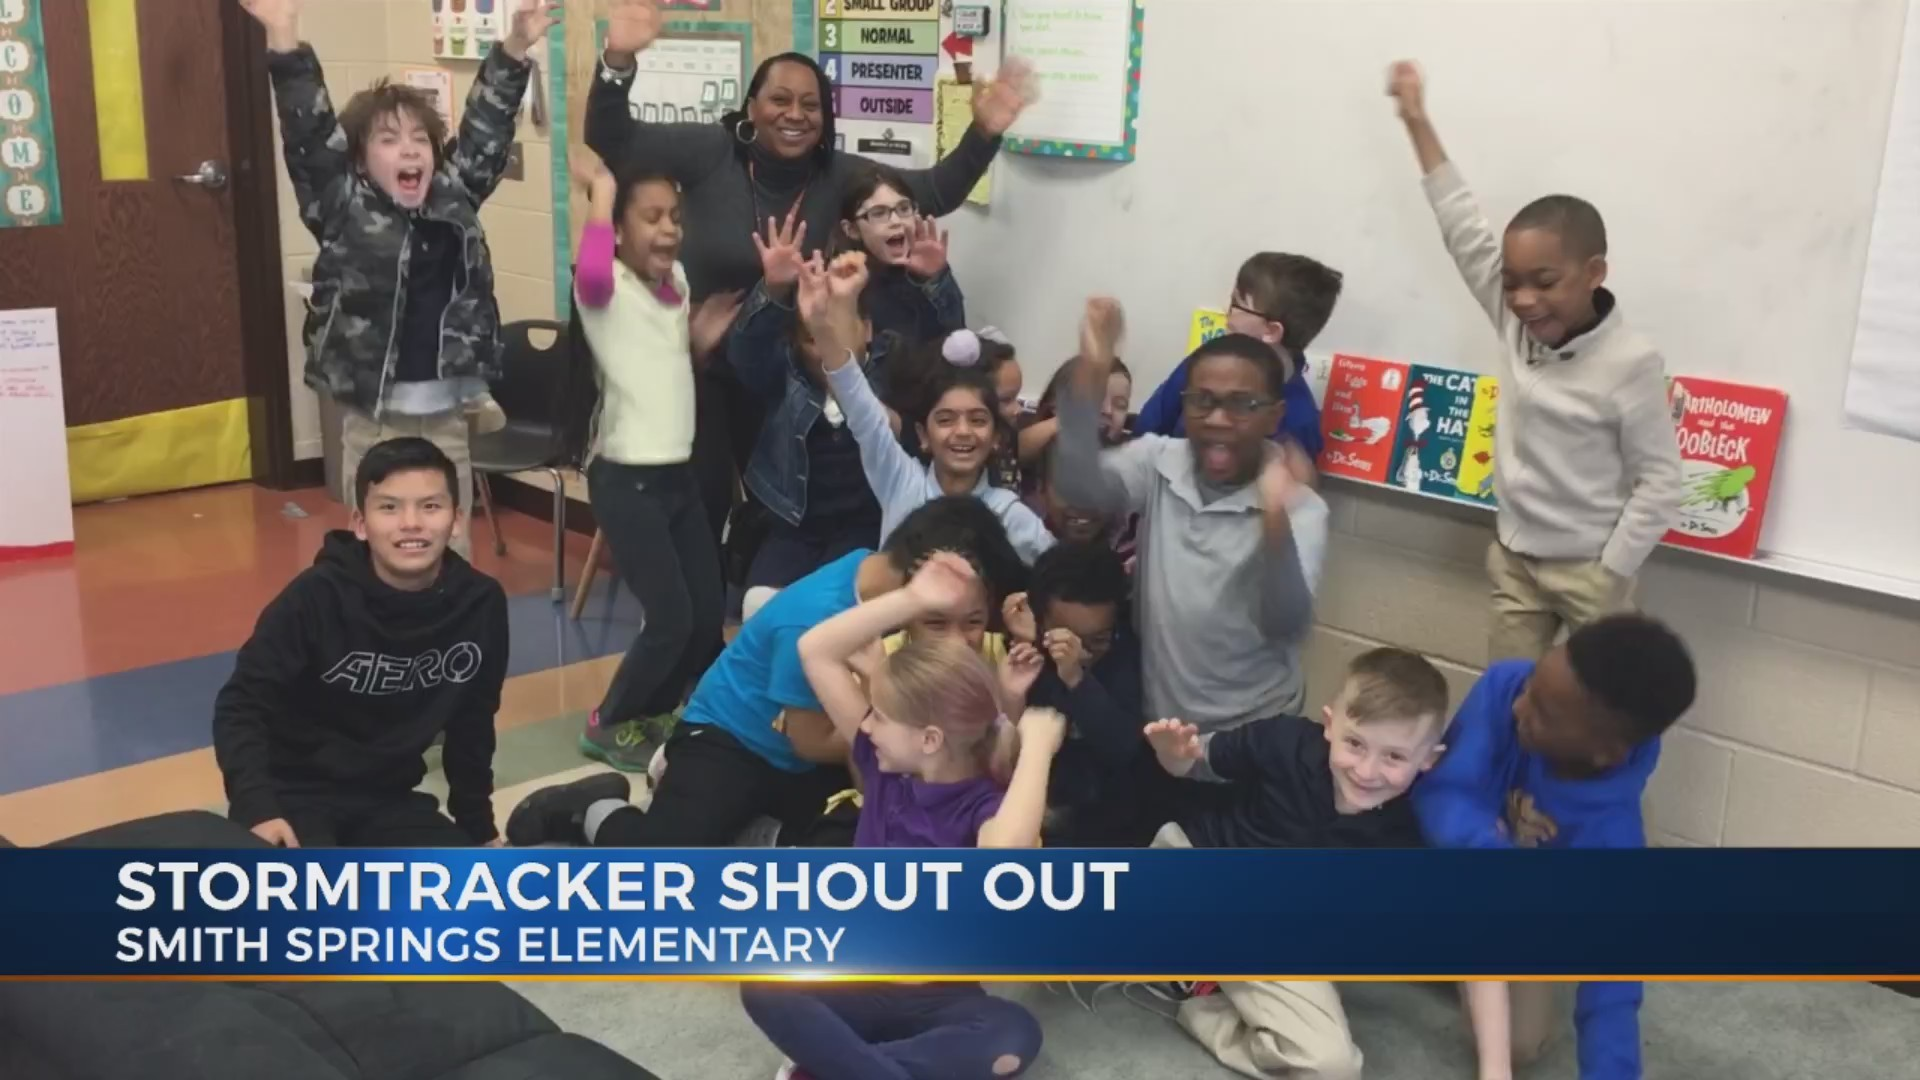 Stormtracker Shout Out